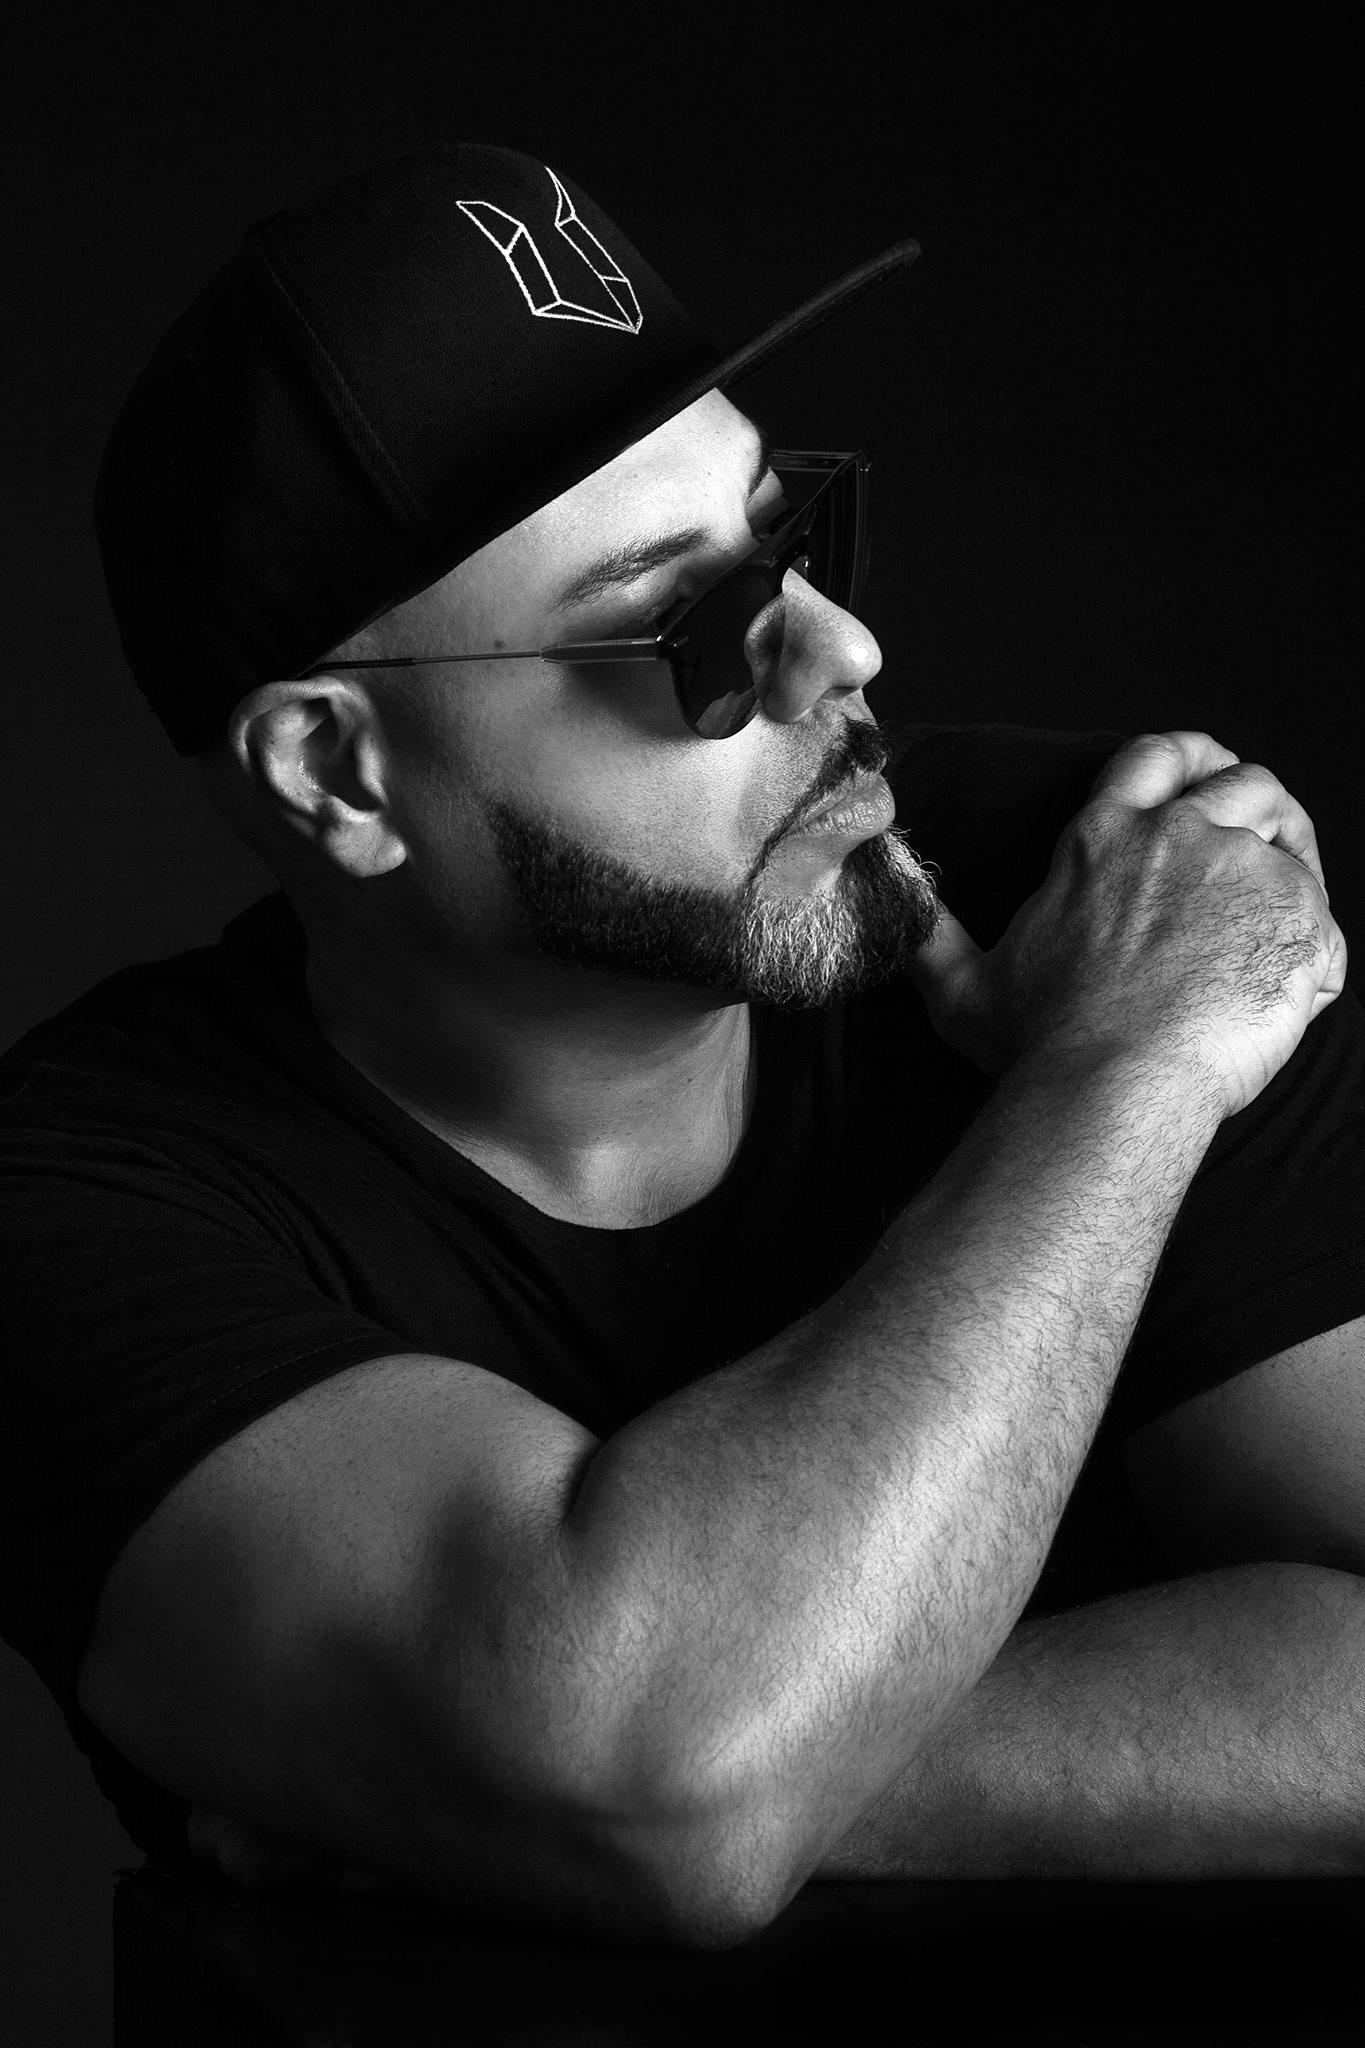 Playlisted by Roger Sanchez !